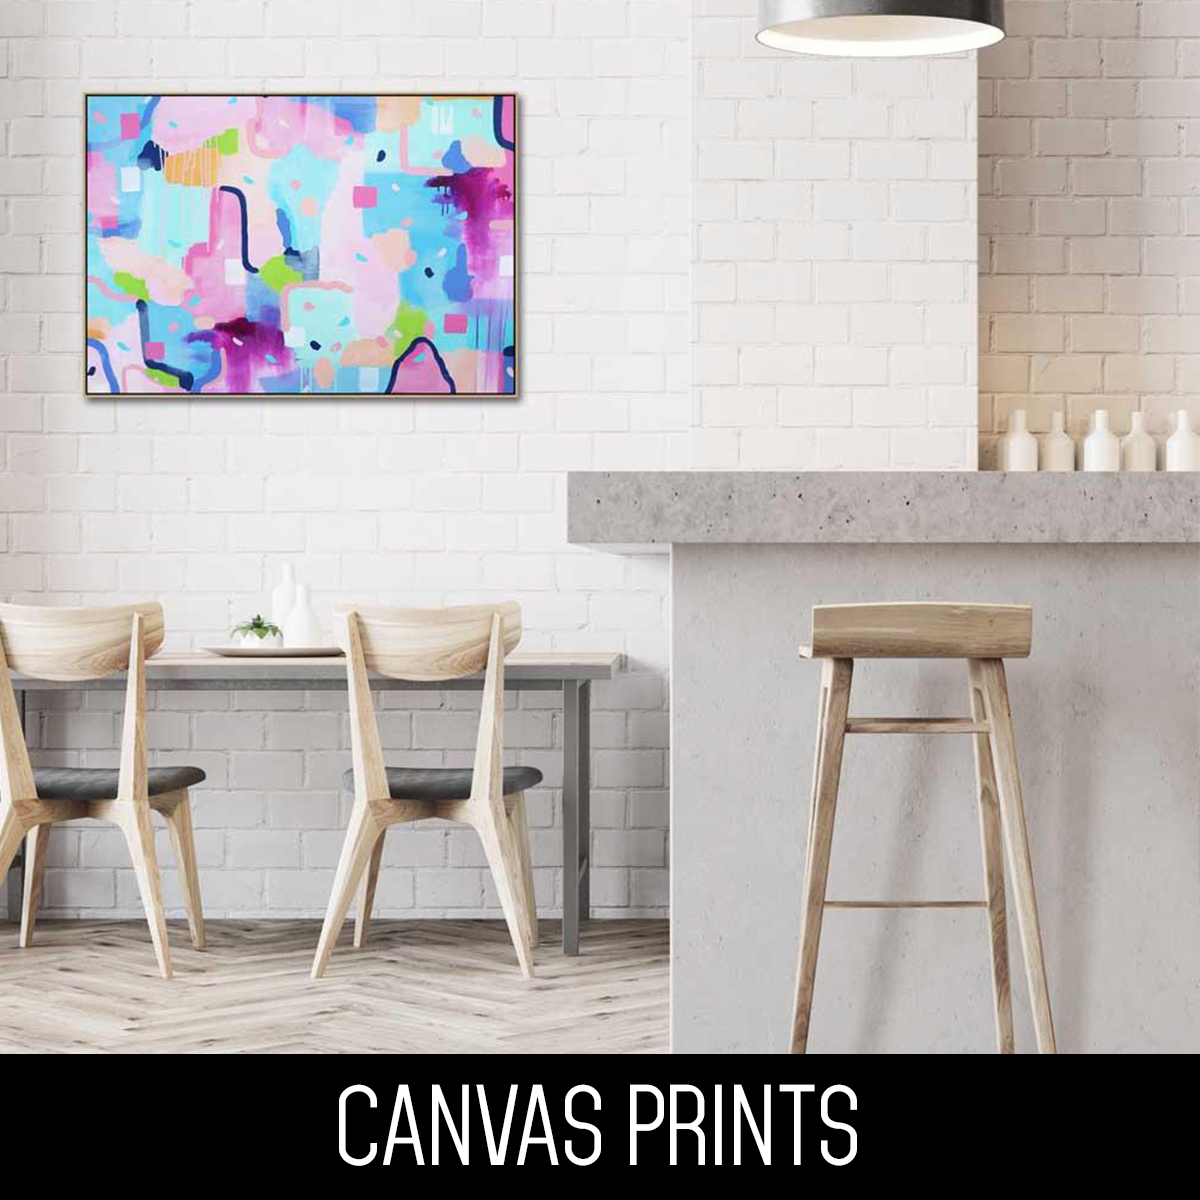 View All Canvas Prints